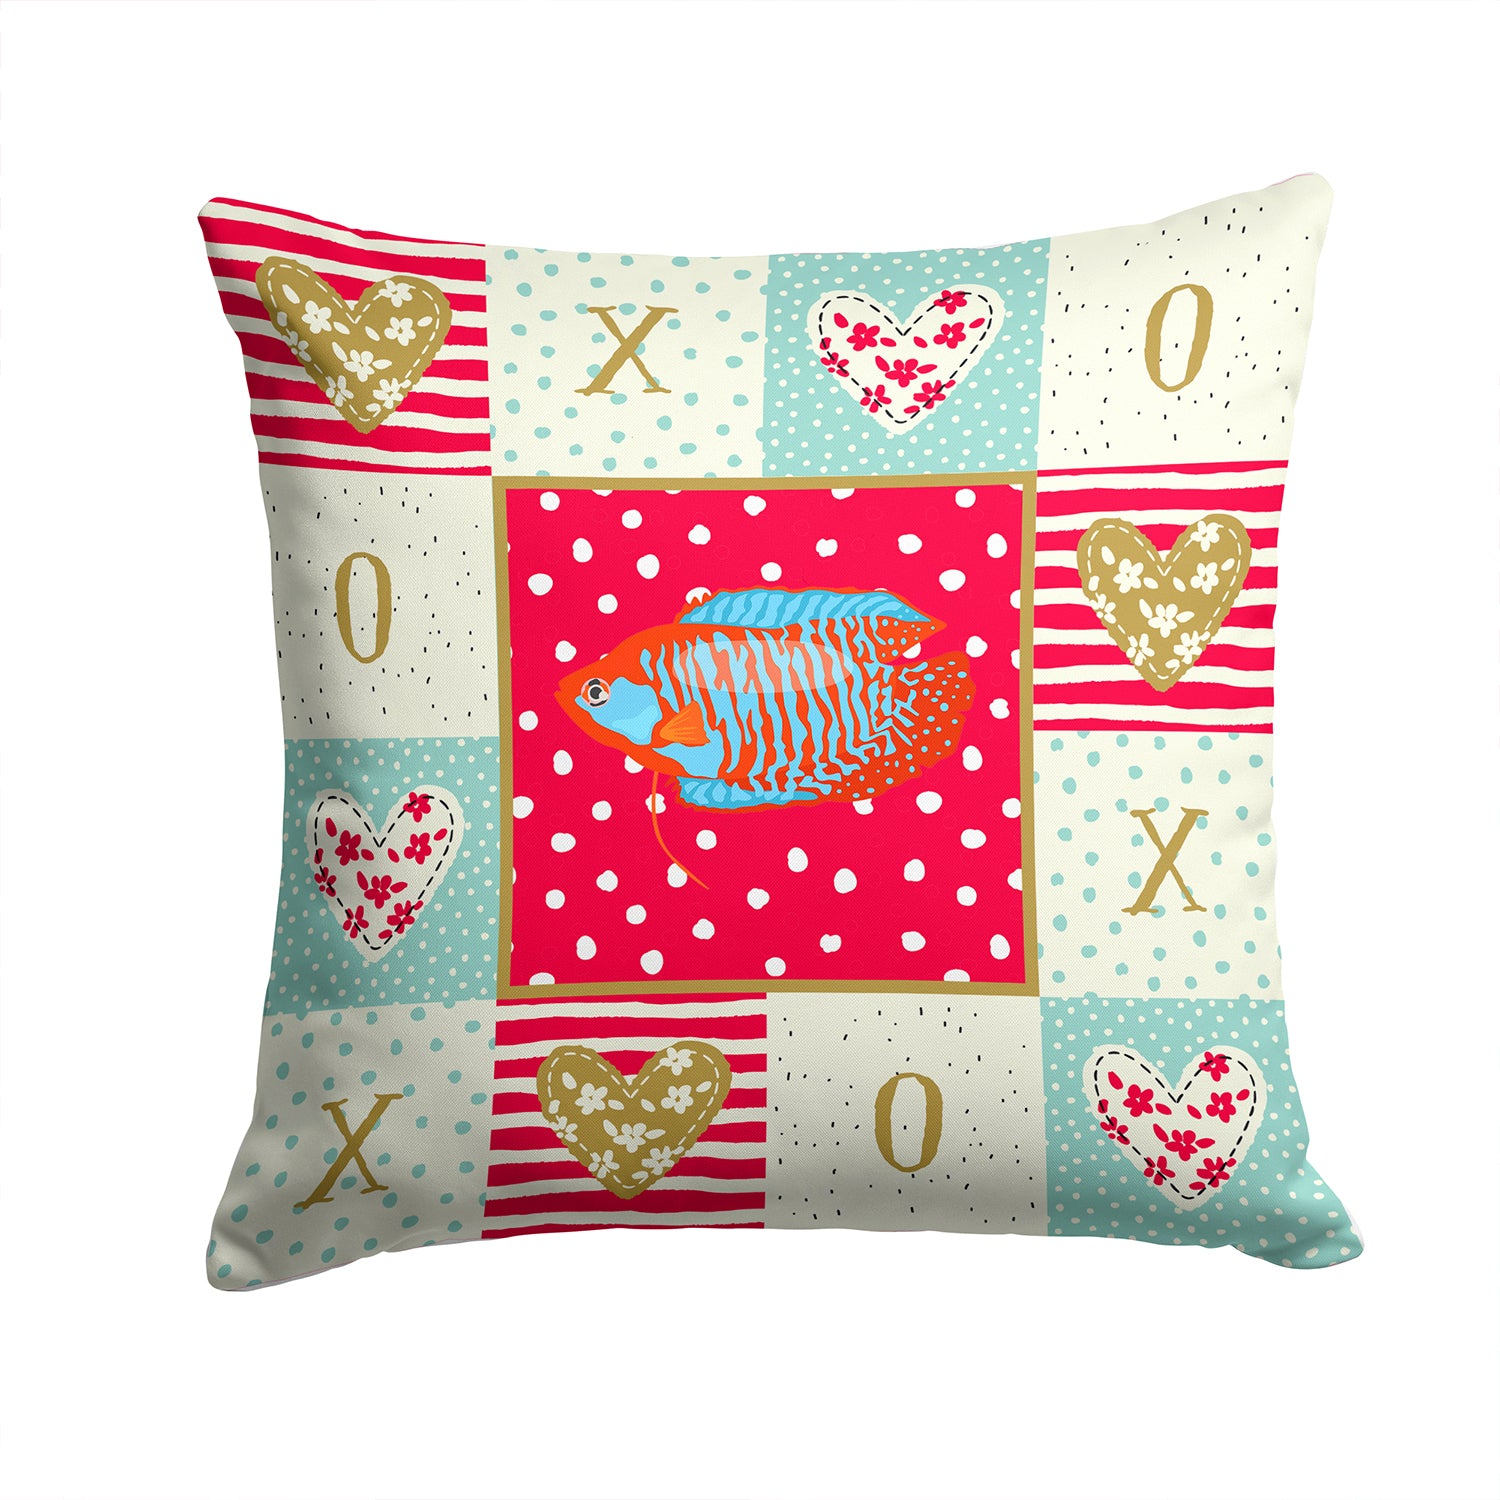 Dwarf Gourami Love Fabric Decorative Pillow CK5485PW1414 by Caroline's Treasures